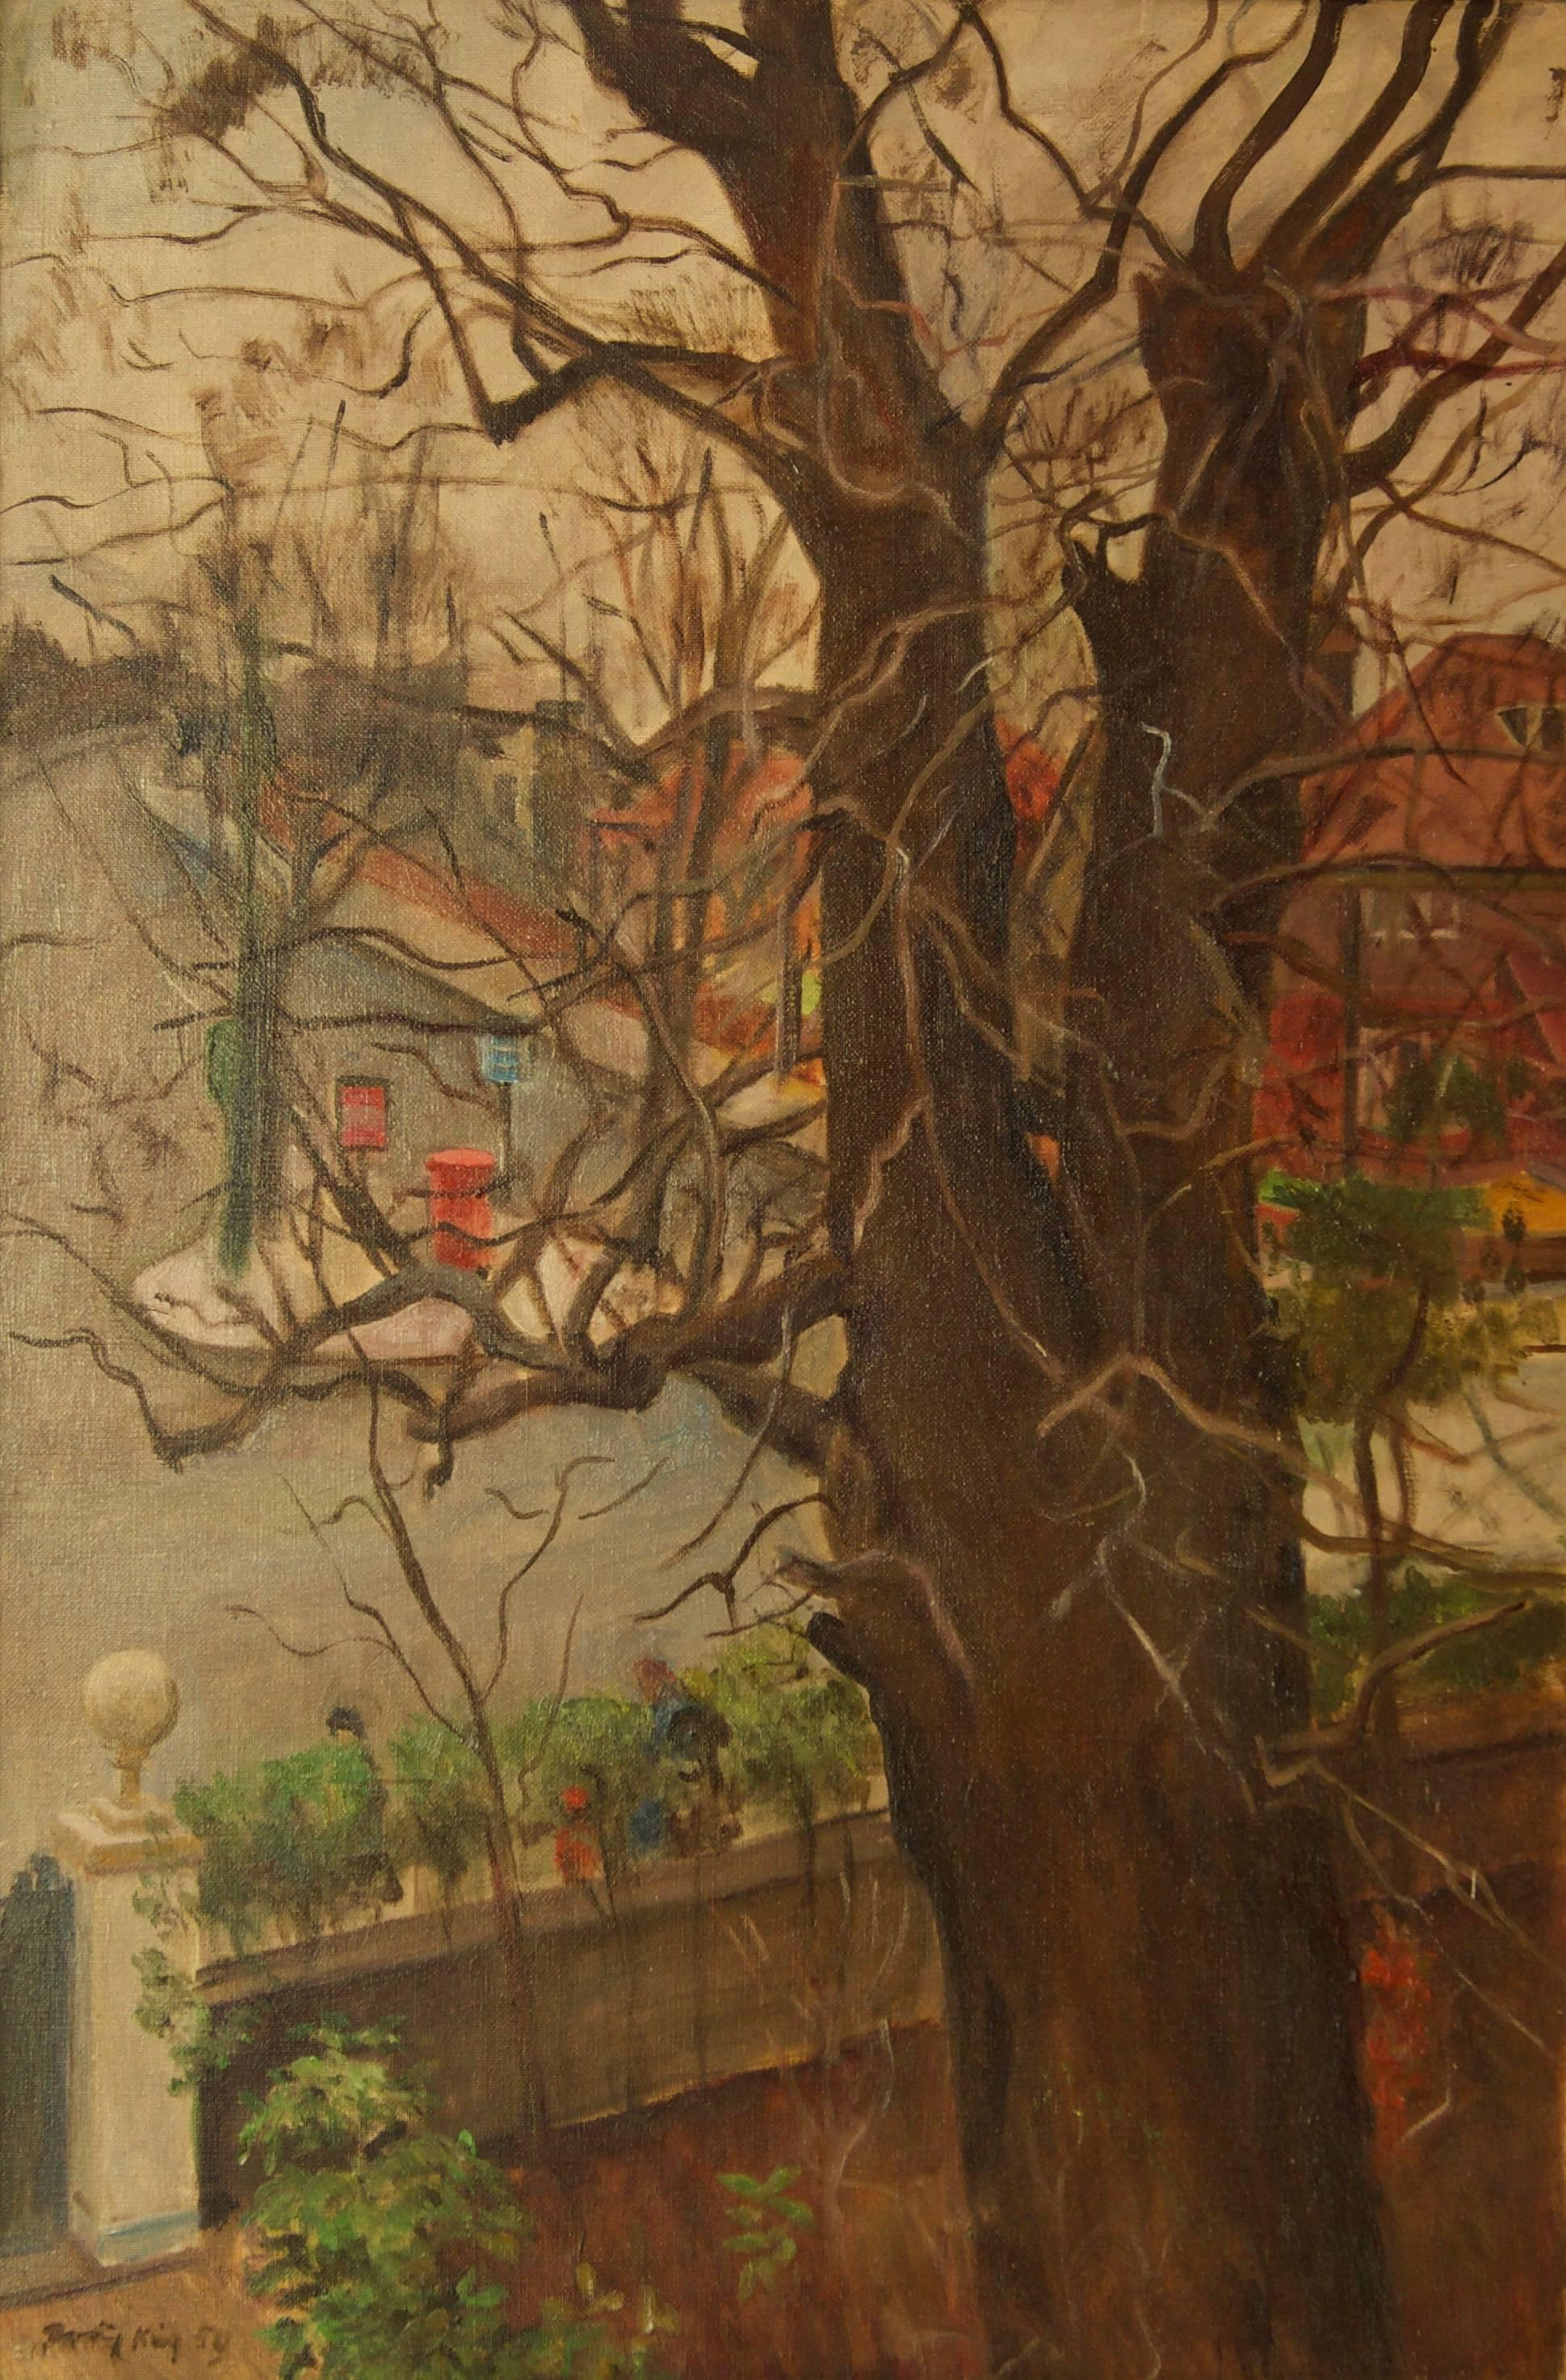 Artist's Address - Mid 20th Century Impressionist Oil by Dorothy King - London